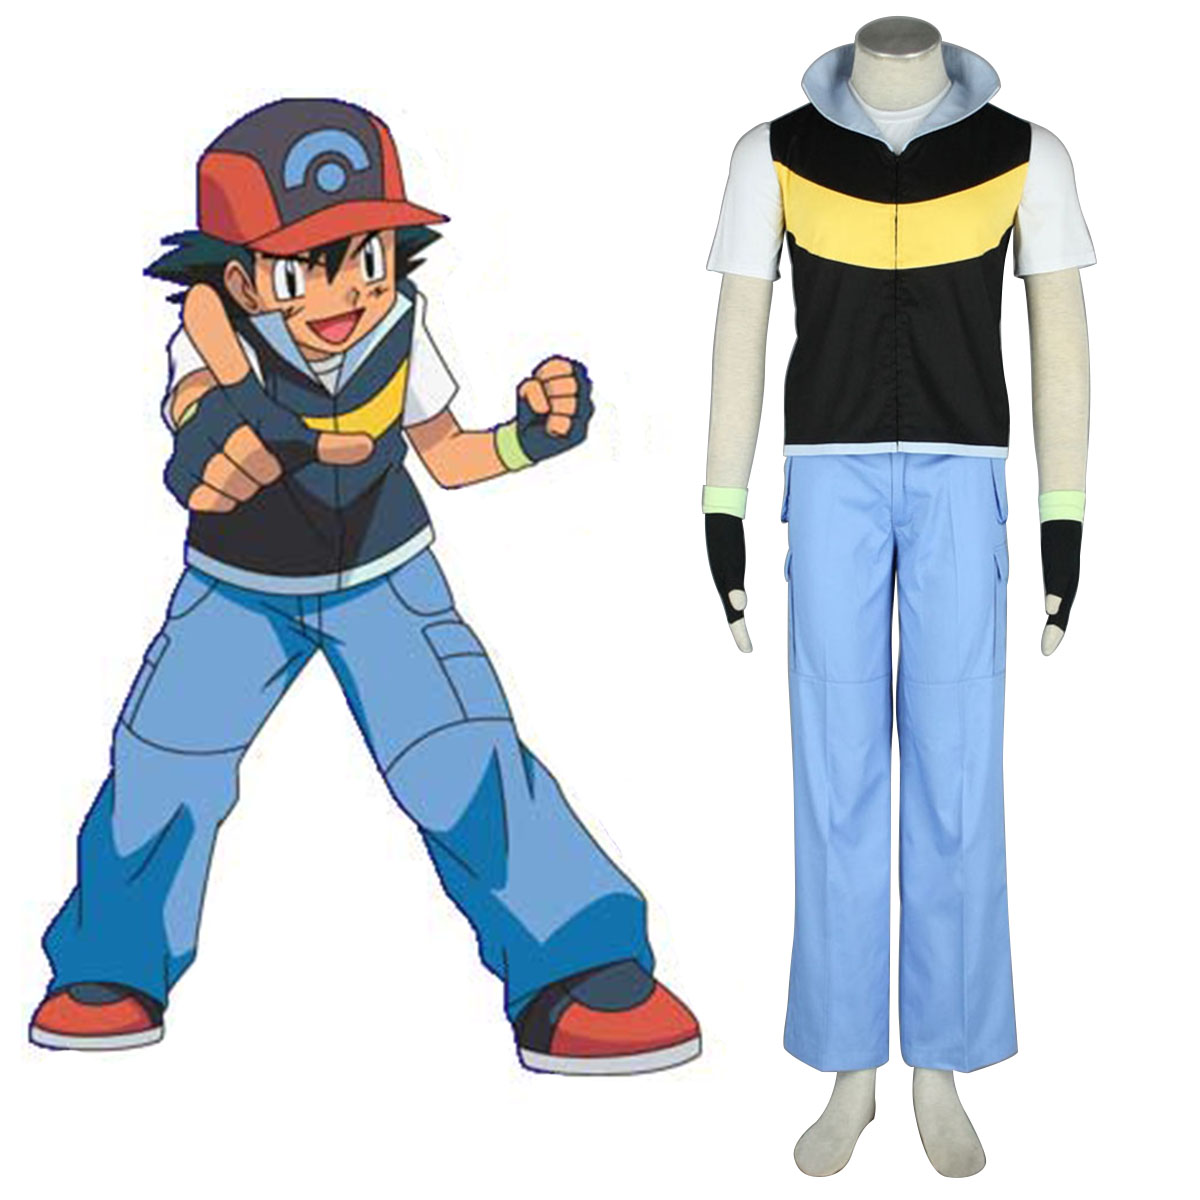 Pokémon Ash Ketchum 1 Cosplay Costumes New Zealand Online Store